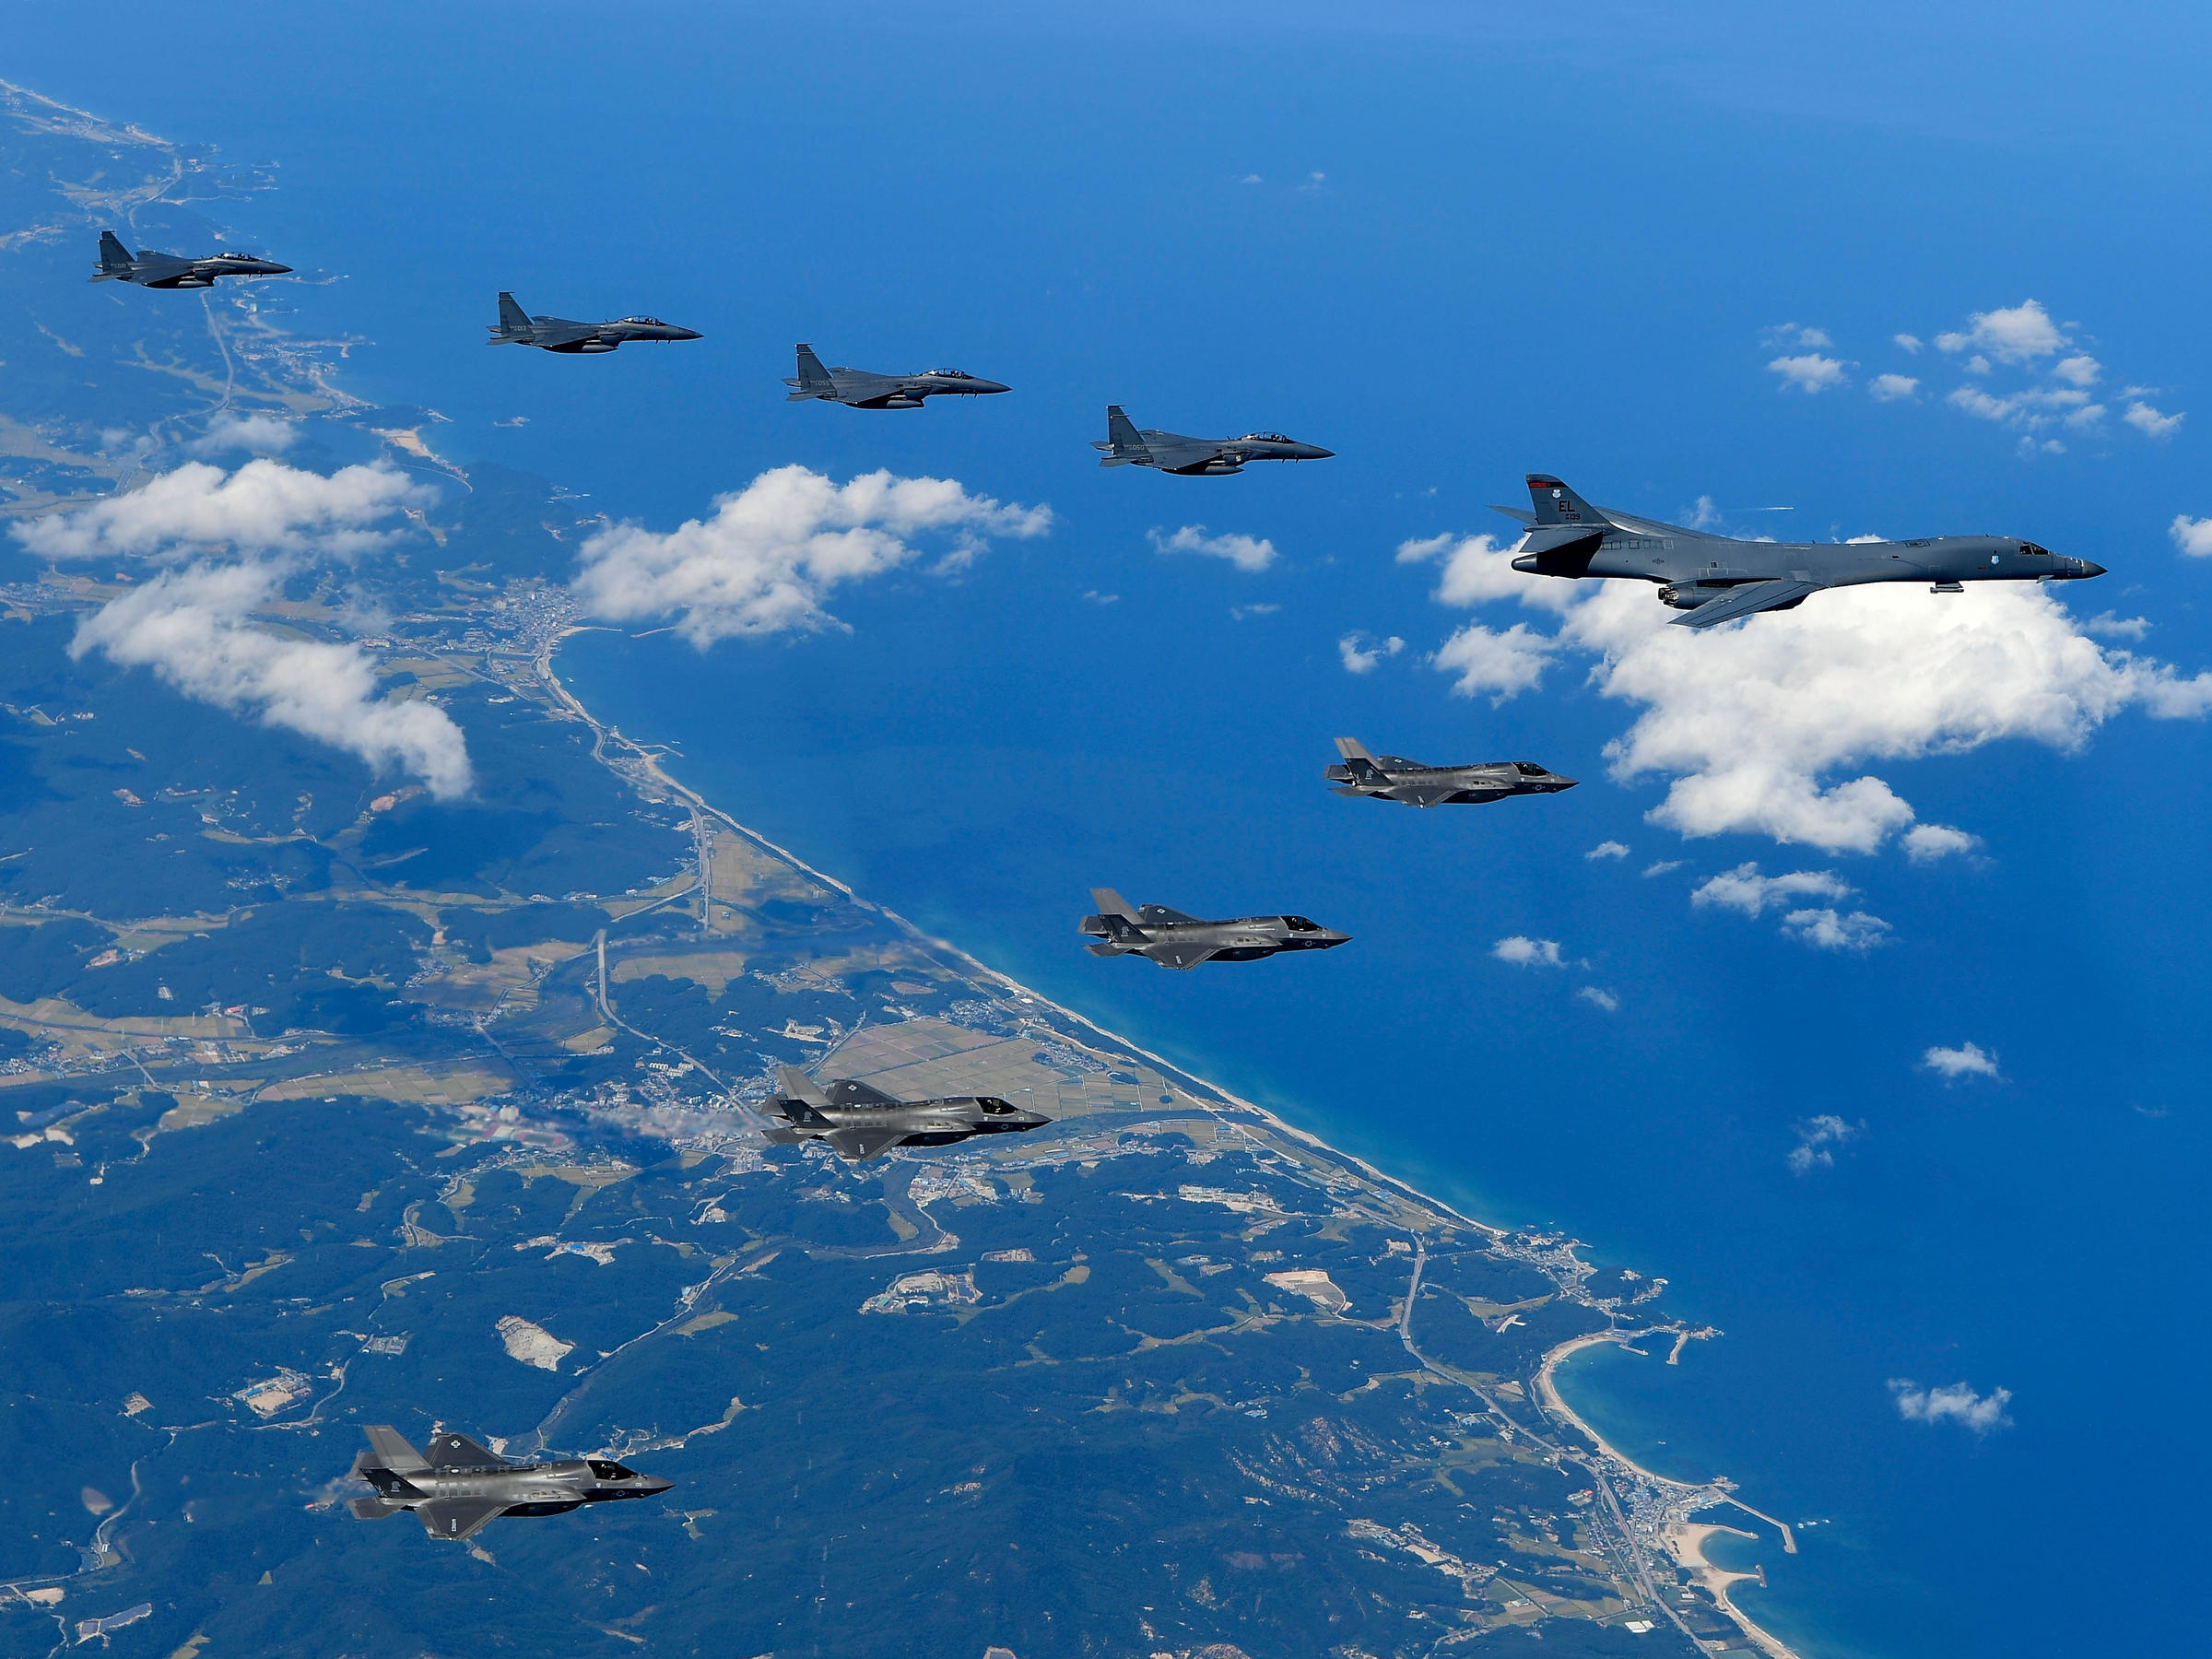 South Korea creates 'decapitation' unit targeting North's leadership